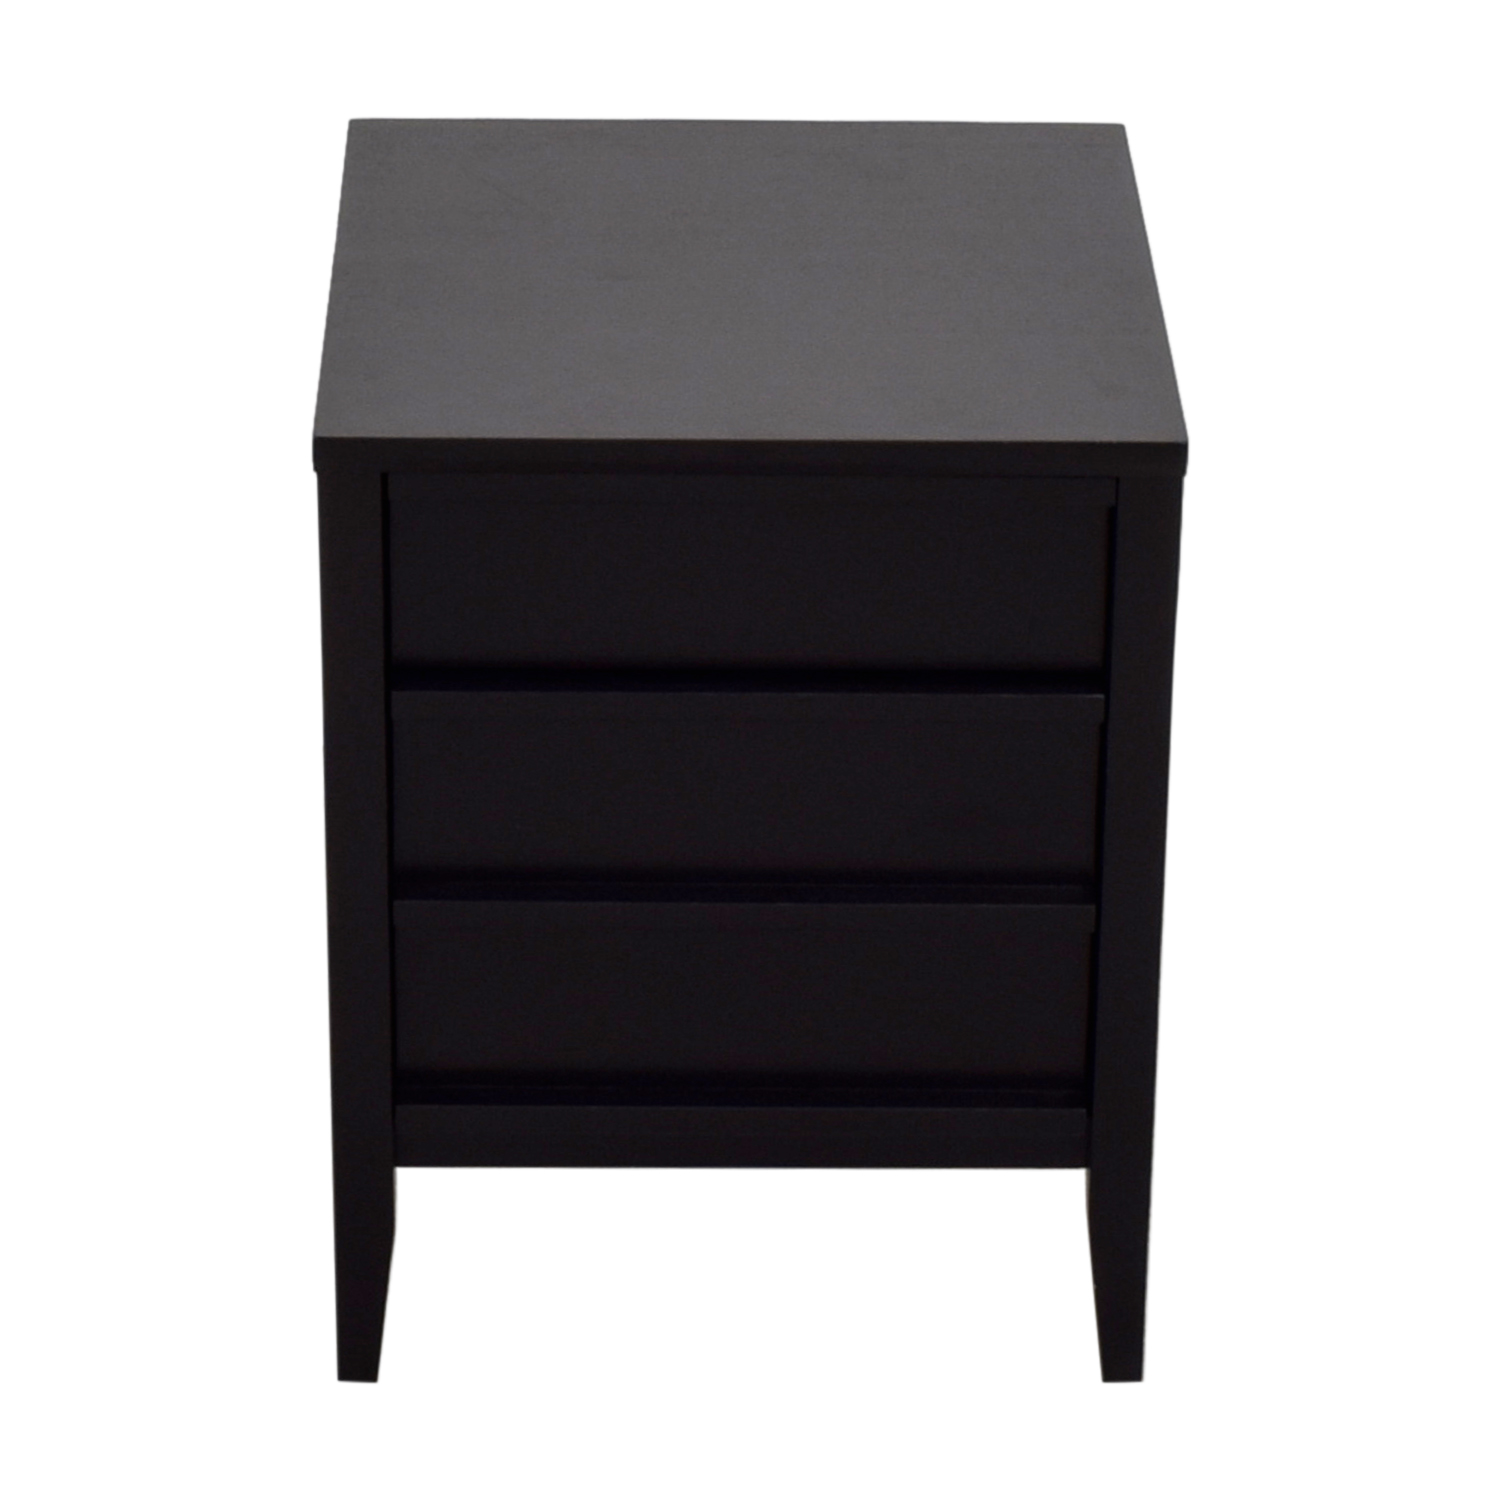 Crate & Barrel Crate & Barrel Two-Drawer File Cabinet dimensions